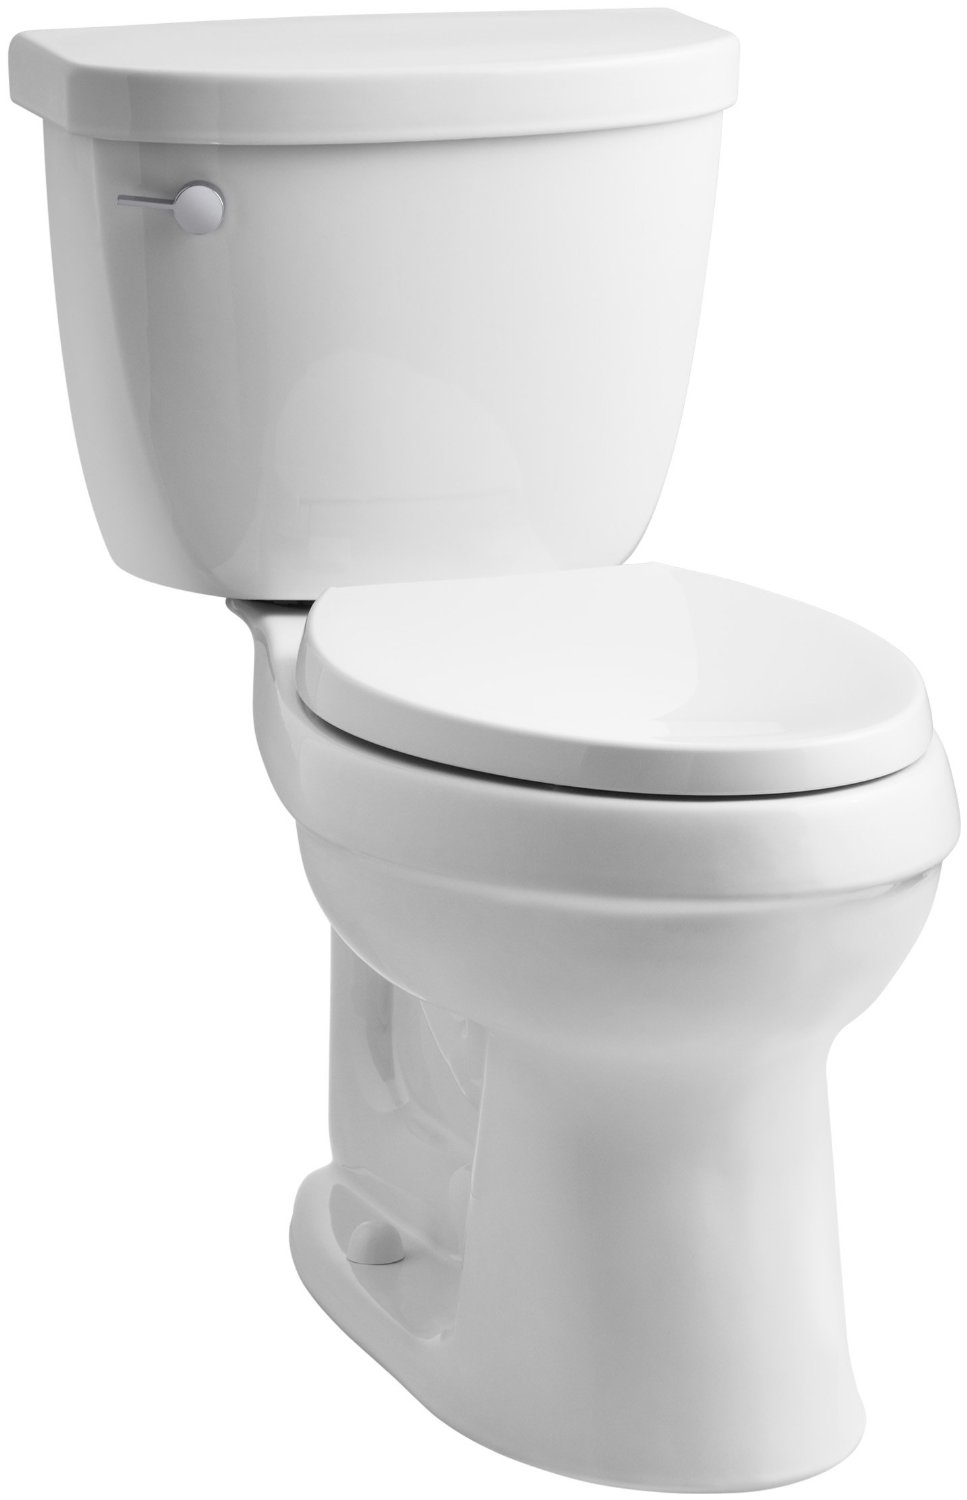 The Best In Depth Toilet Reviews For 2020 Toilet Review